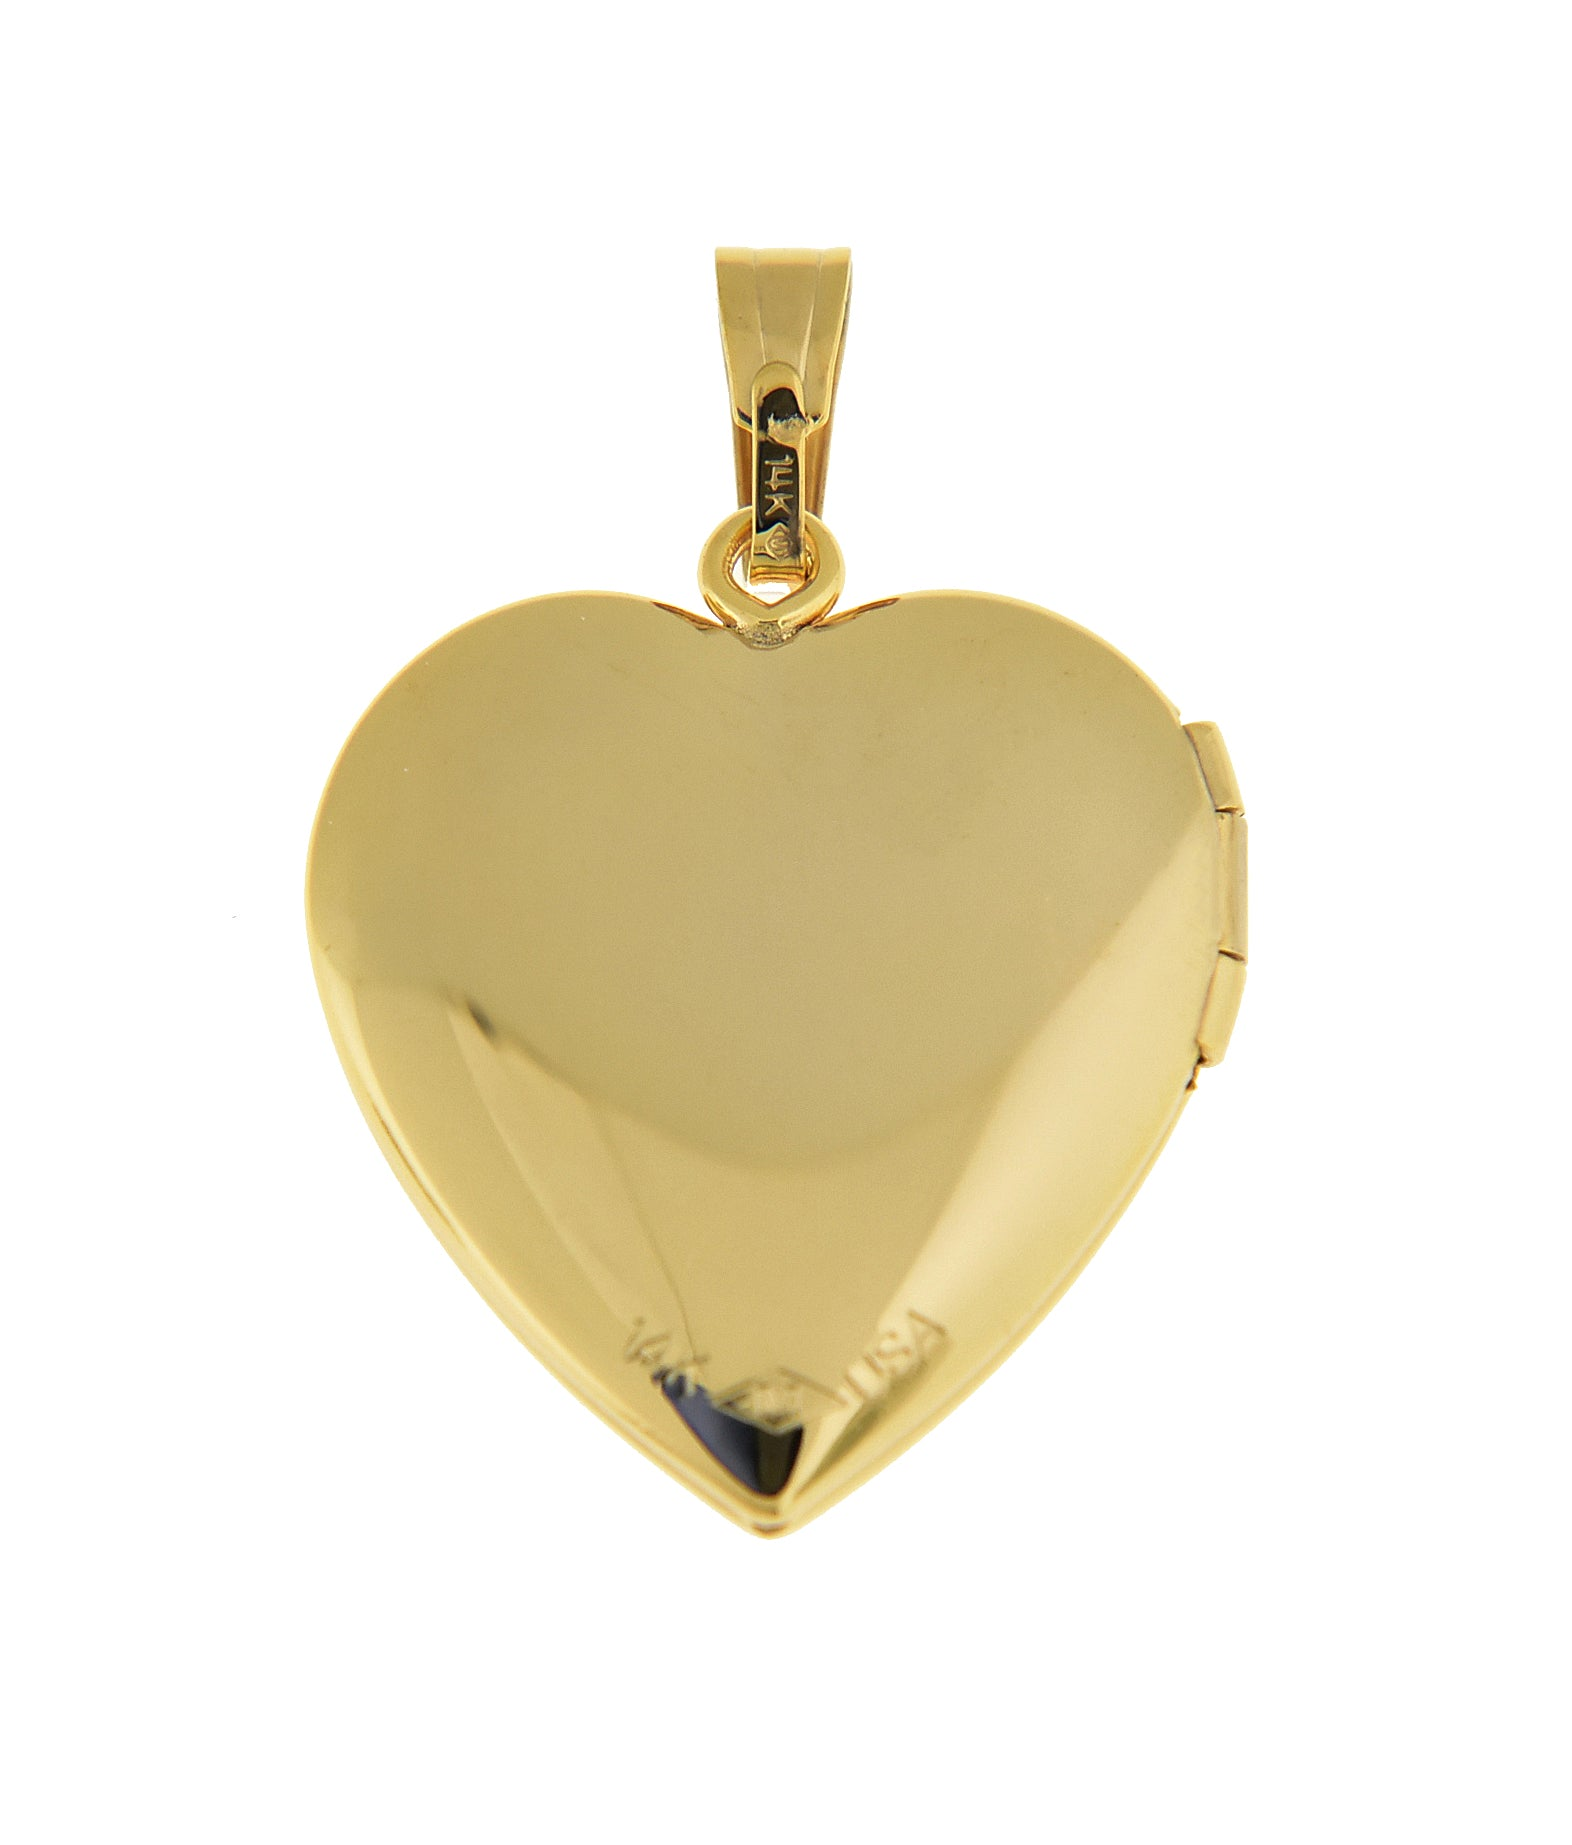 14K Solid Yellow Gold 19mm Heart .02 CTW Diamond Locket Pendant Charm Engraved Personalized Monogram